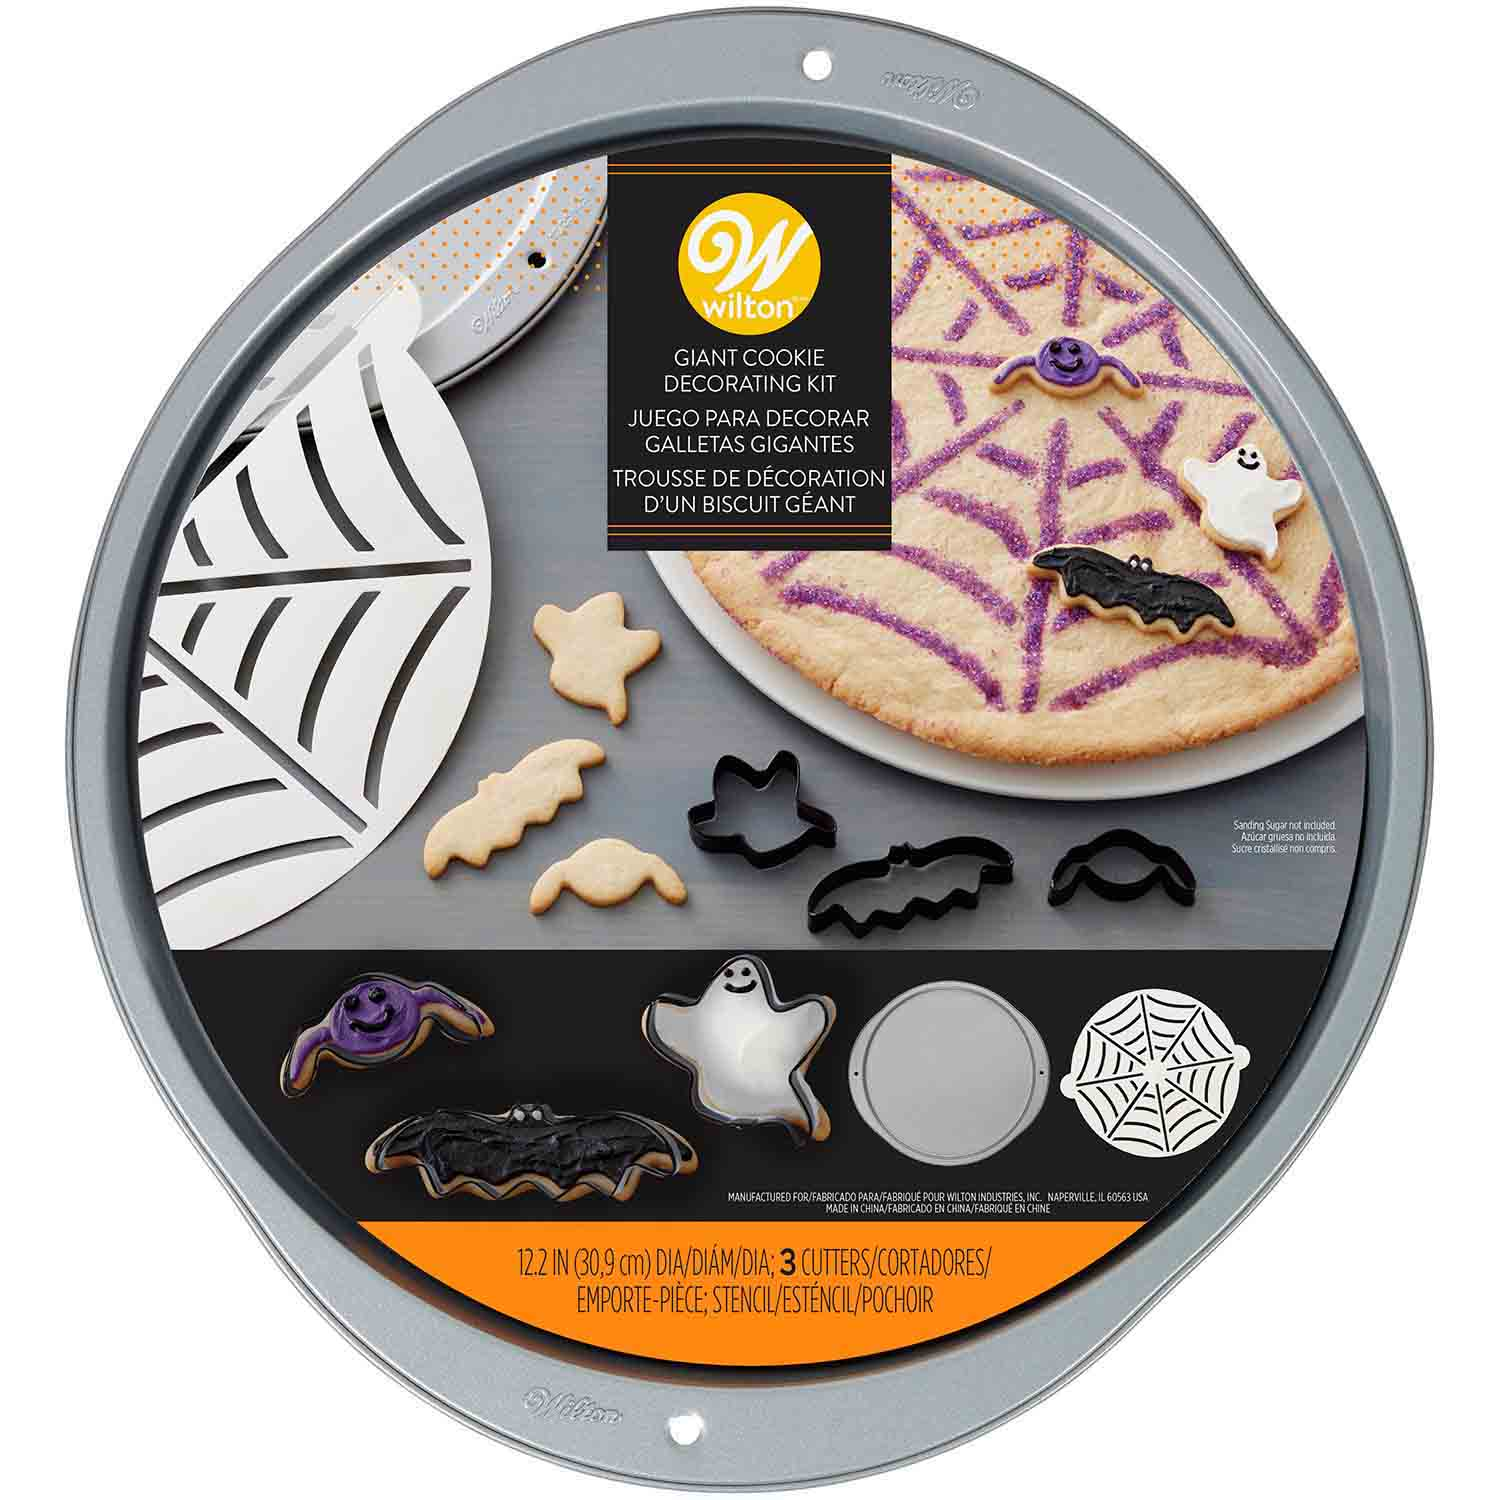 Giant Cookie Decorating Kit